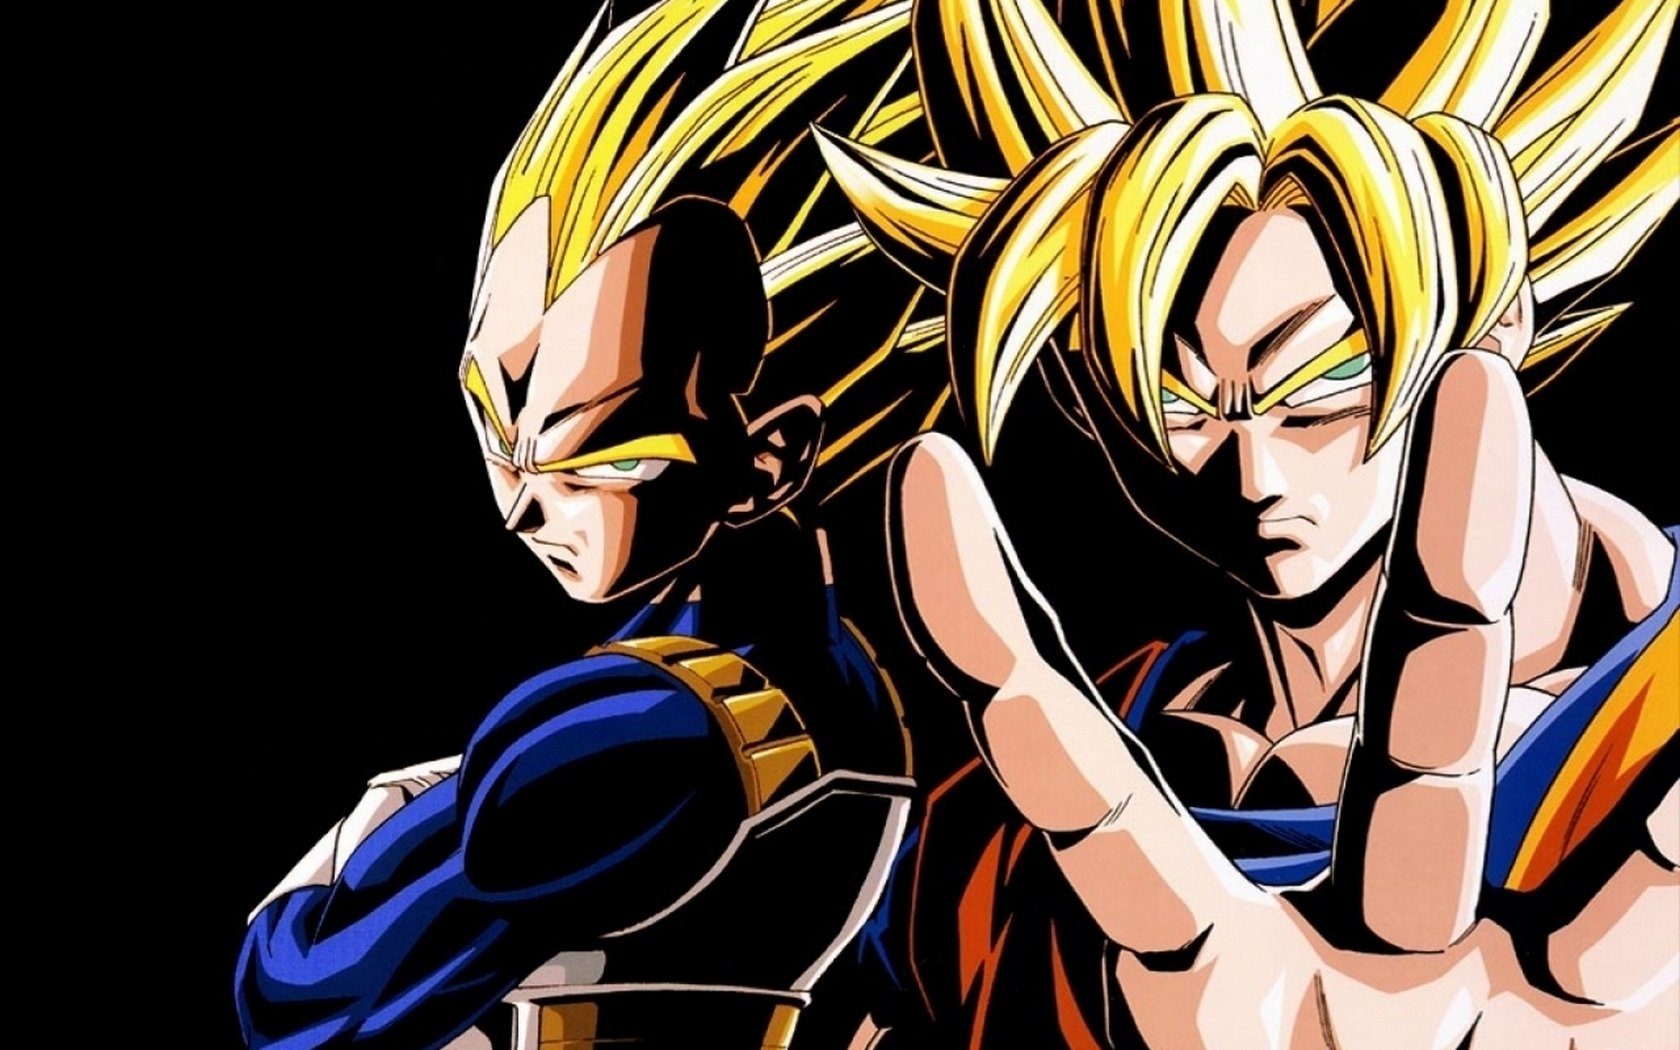 Wallpaper Of Dragon Ball Z